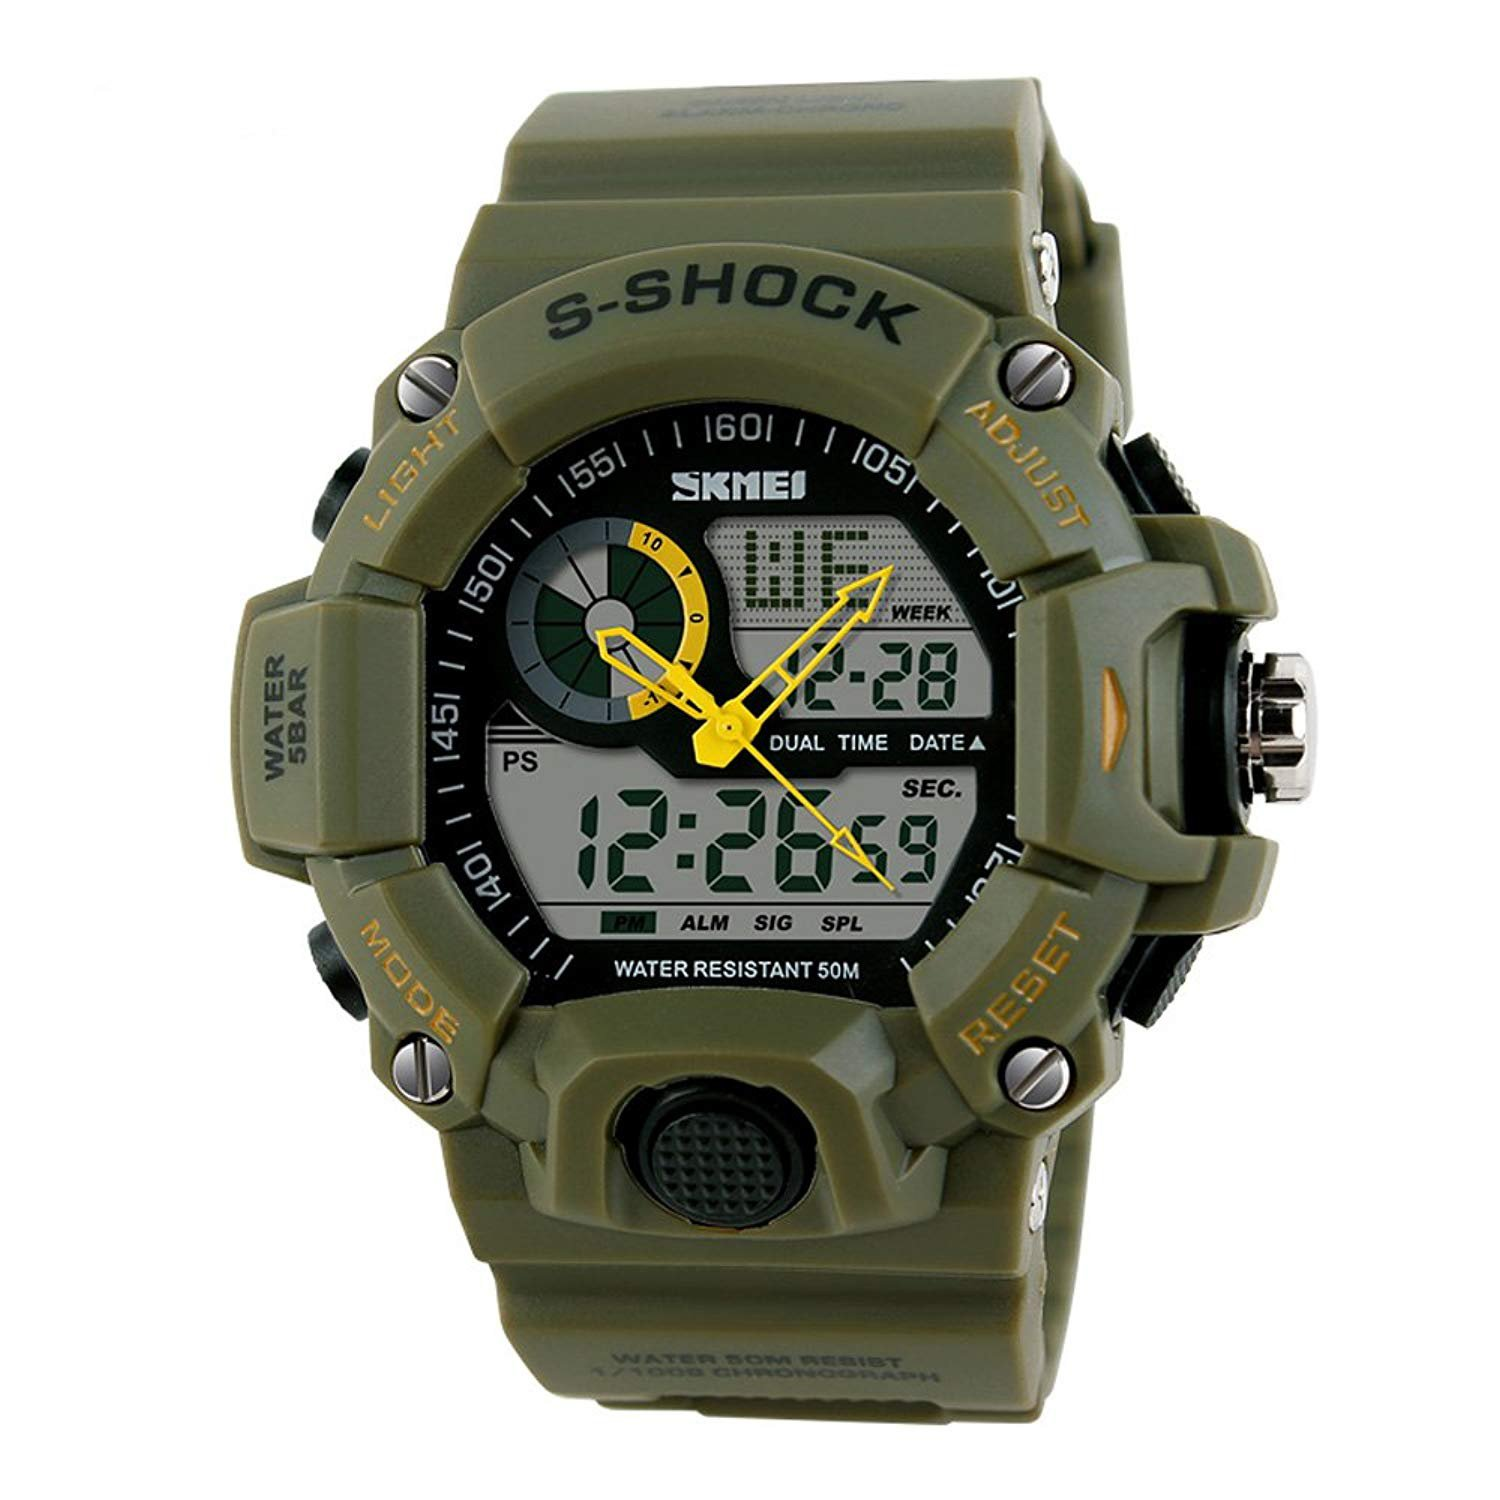 Boy's Chronograph Sports Military Digital Watch Alarm Dual Time LED Resistant Waterproof (Army-Green)